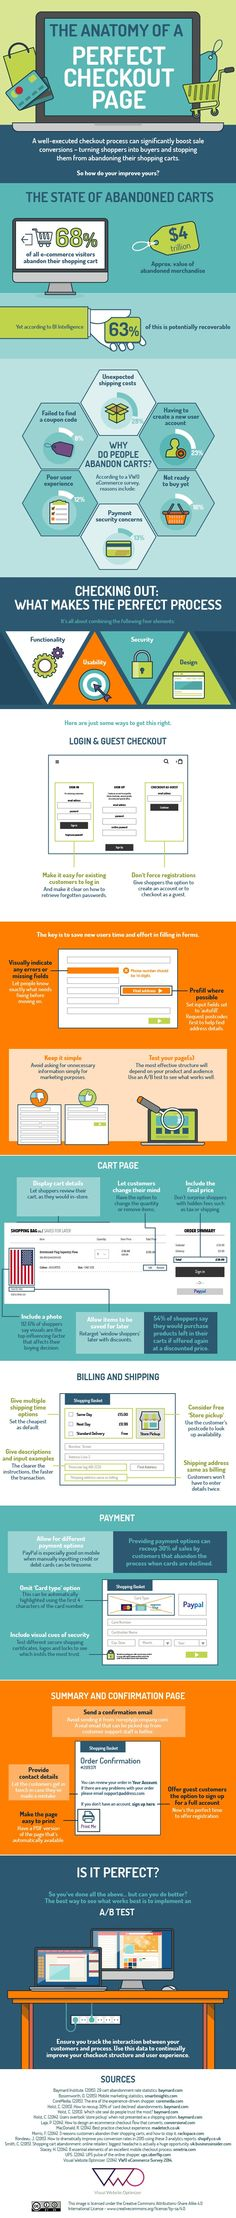 How to Create the Perfect Checkout Page Infographic via HubSpot